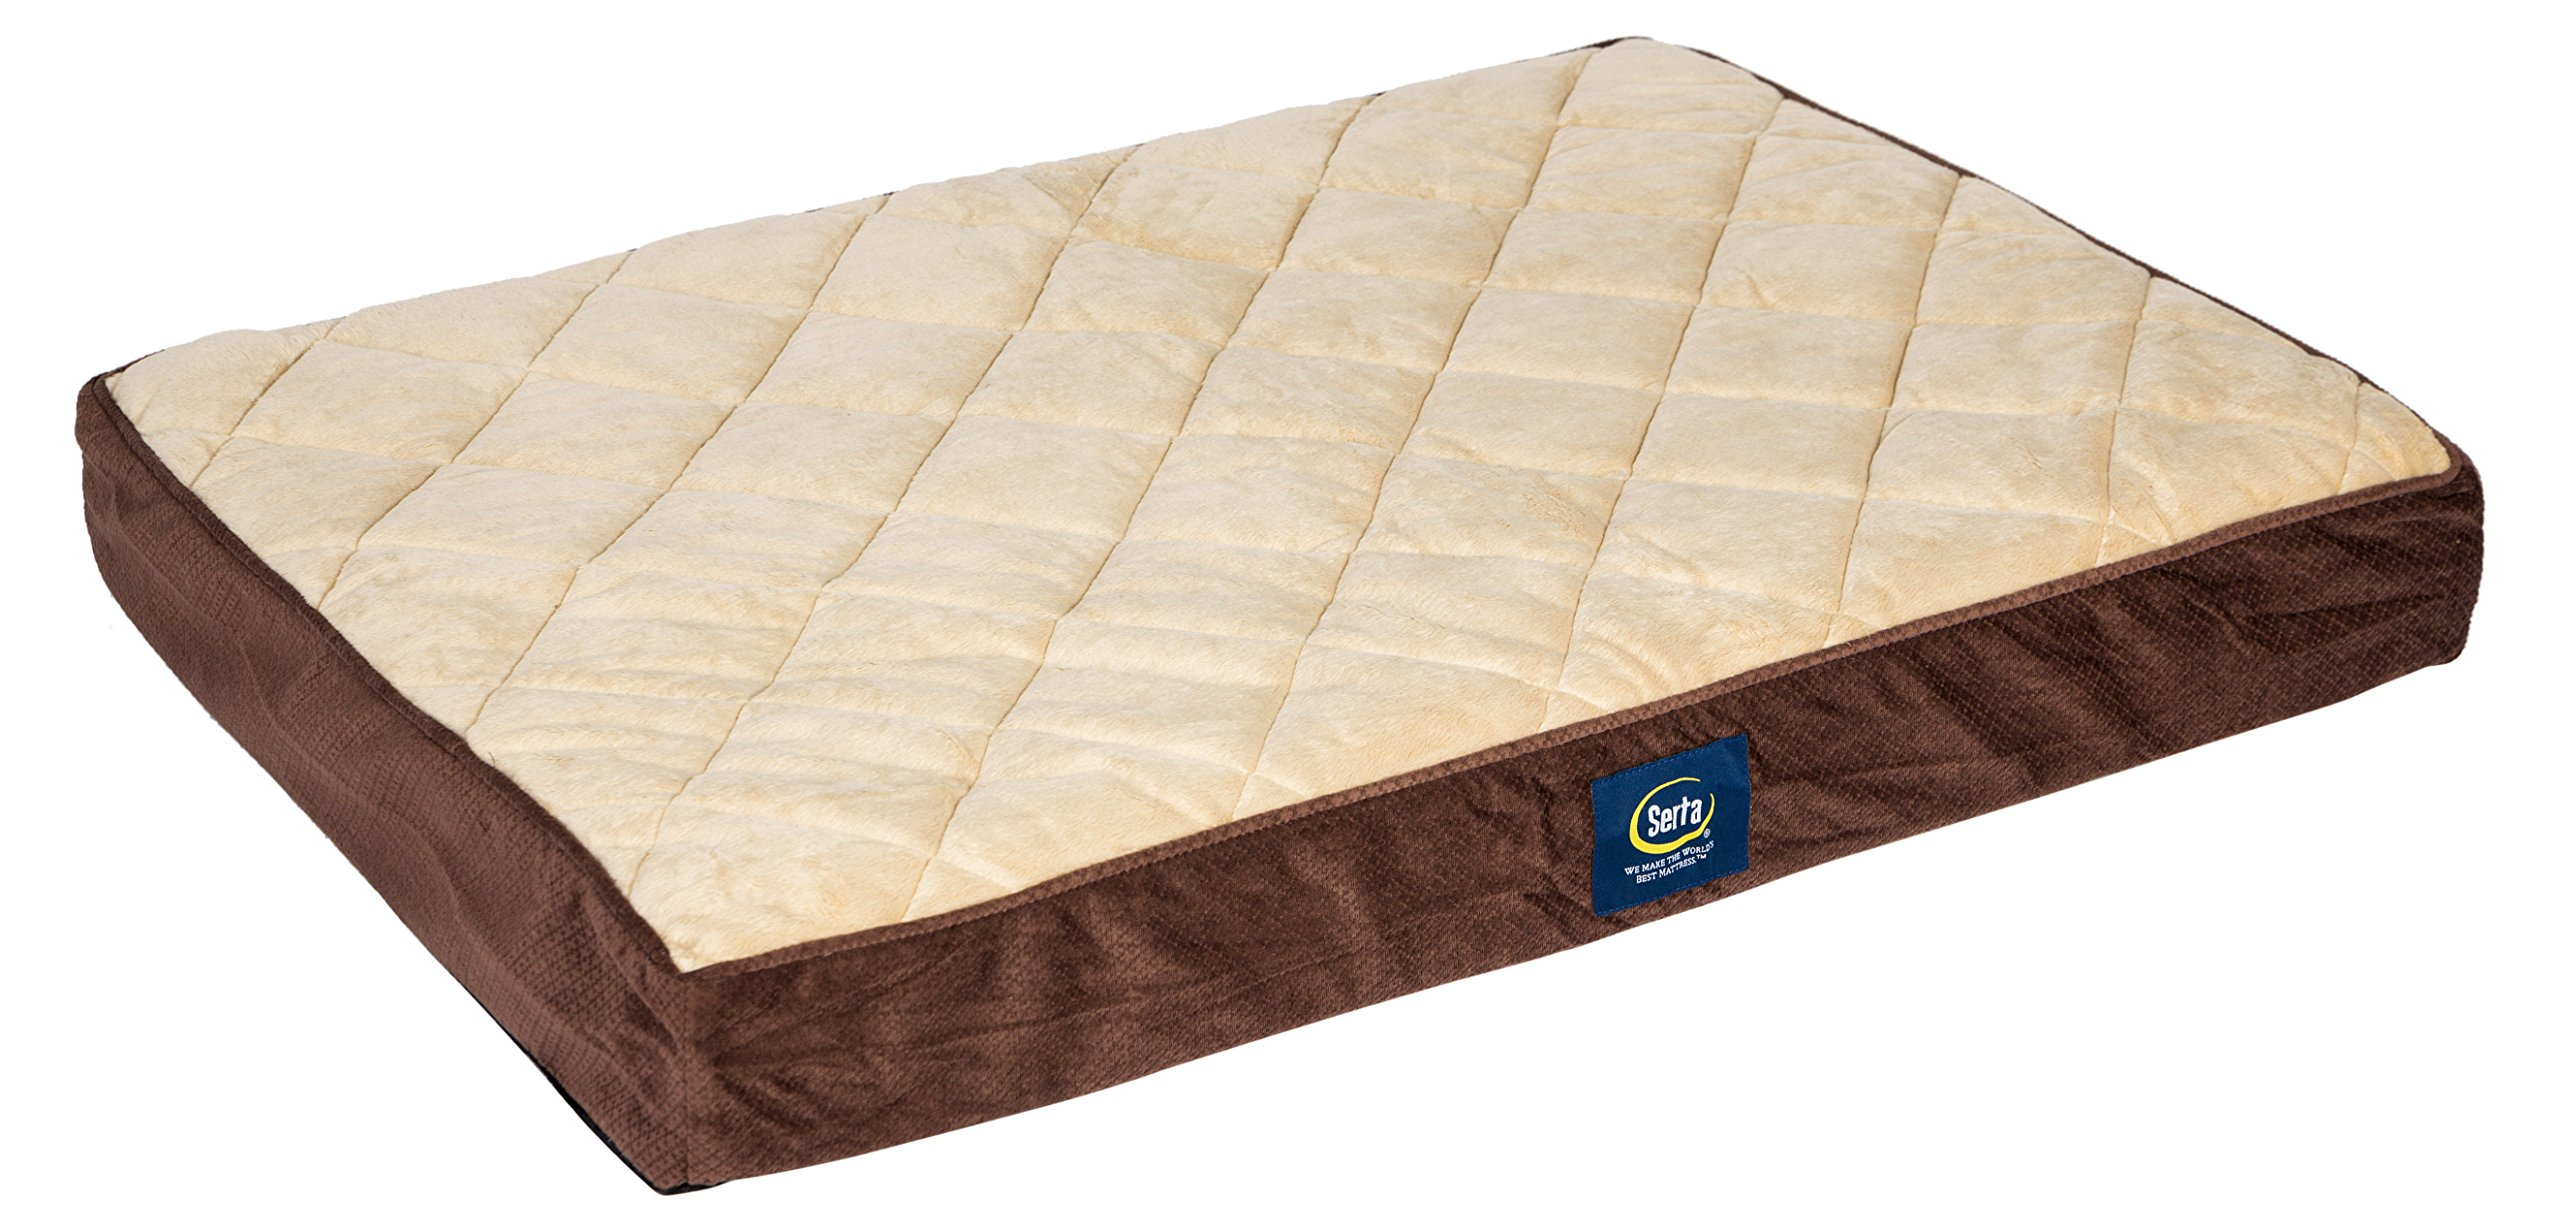 Serta Ortho Quilted Pillowtop Pet Bed, Large, Mocha by Serta